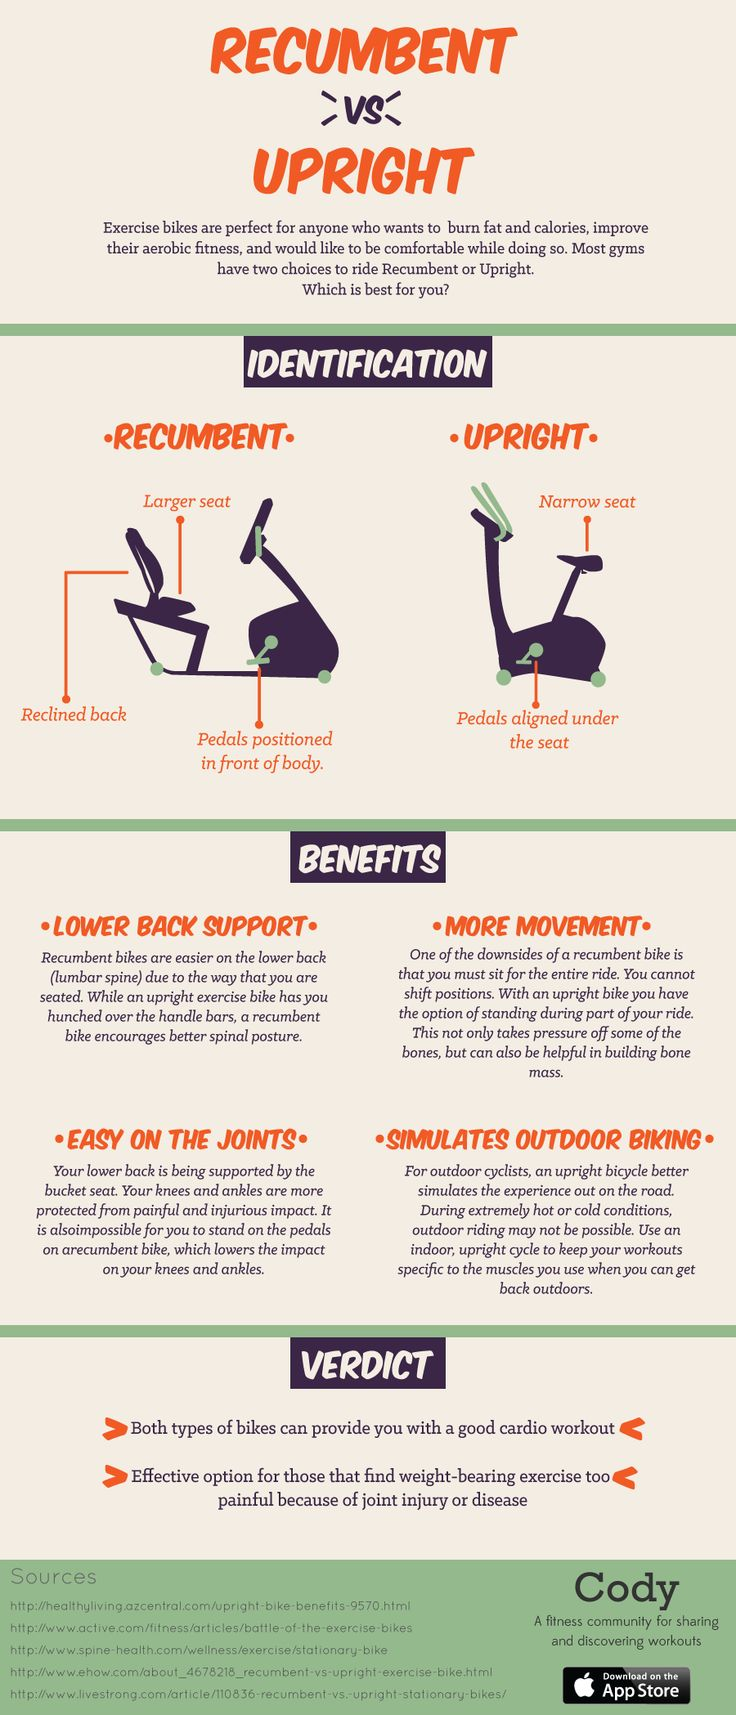 recumbent versus upright exercise bike infographic if you donu0027t know which bike to